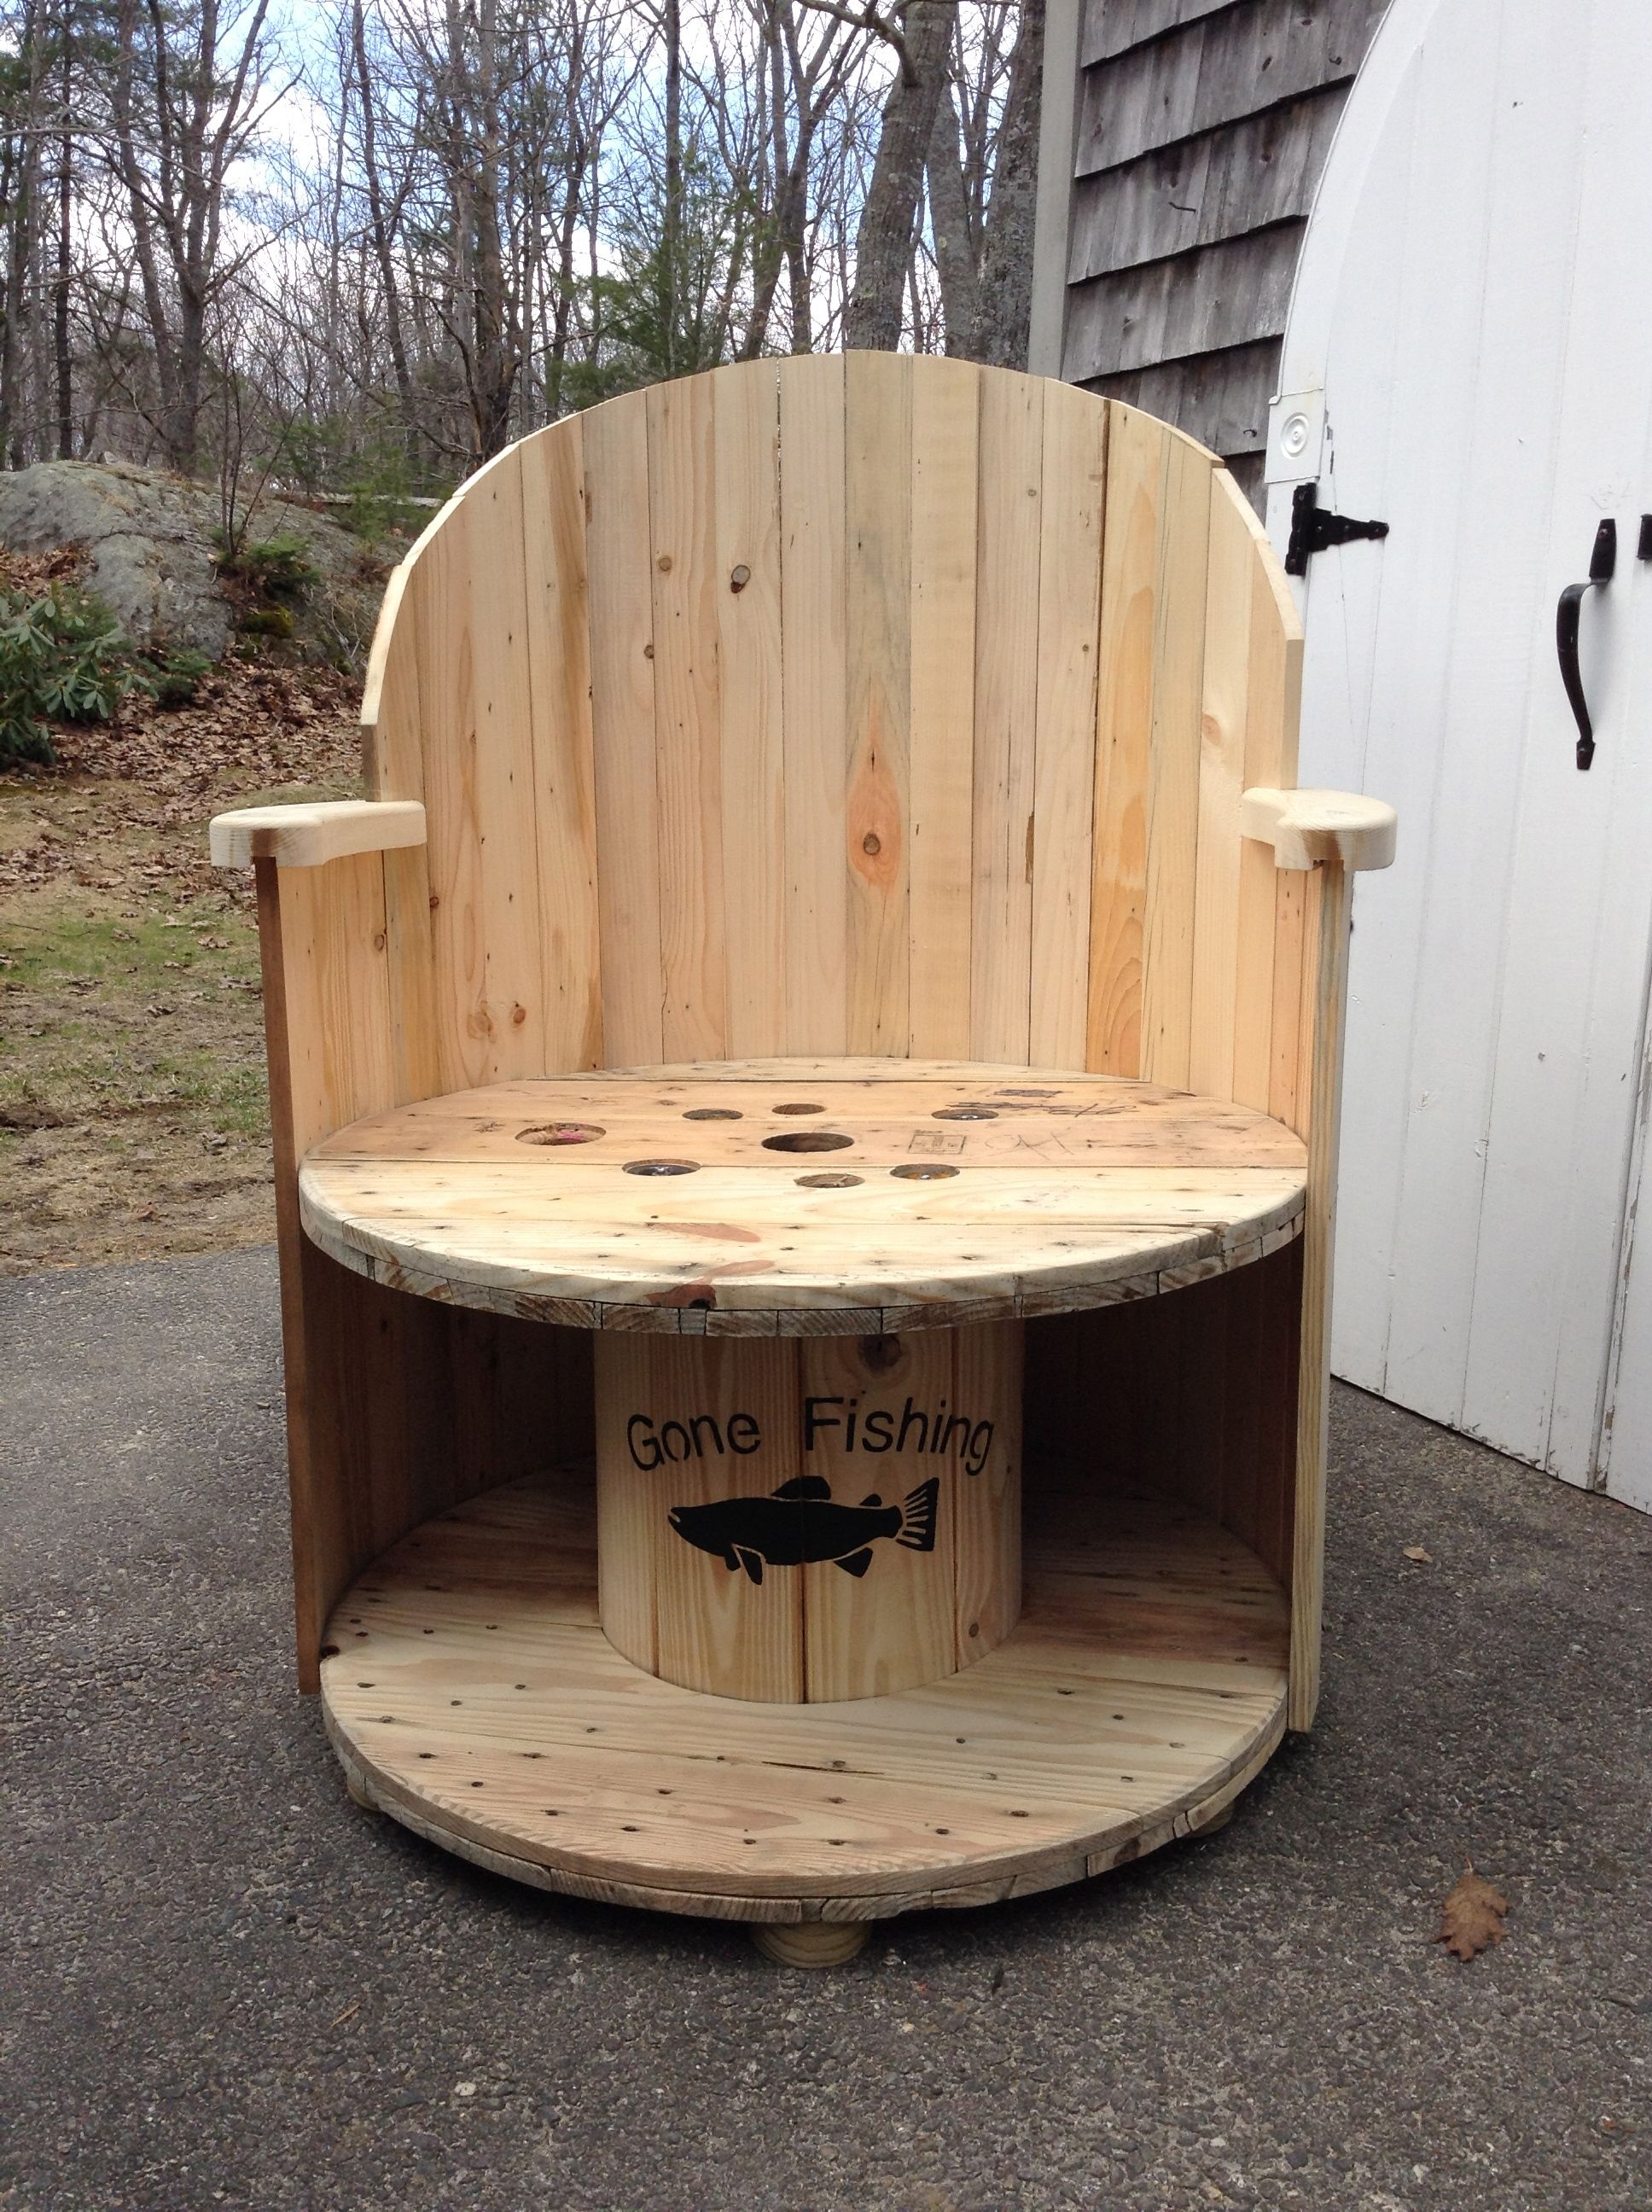 Amazing Simple Inexpensive Garden Chair Made Out Of A Cable Wire Wheel And Scrap  Wood.